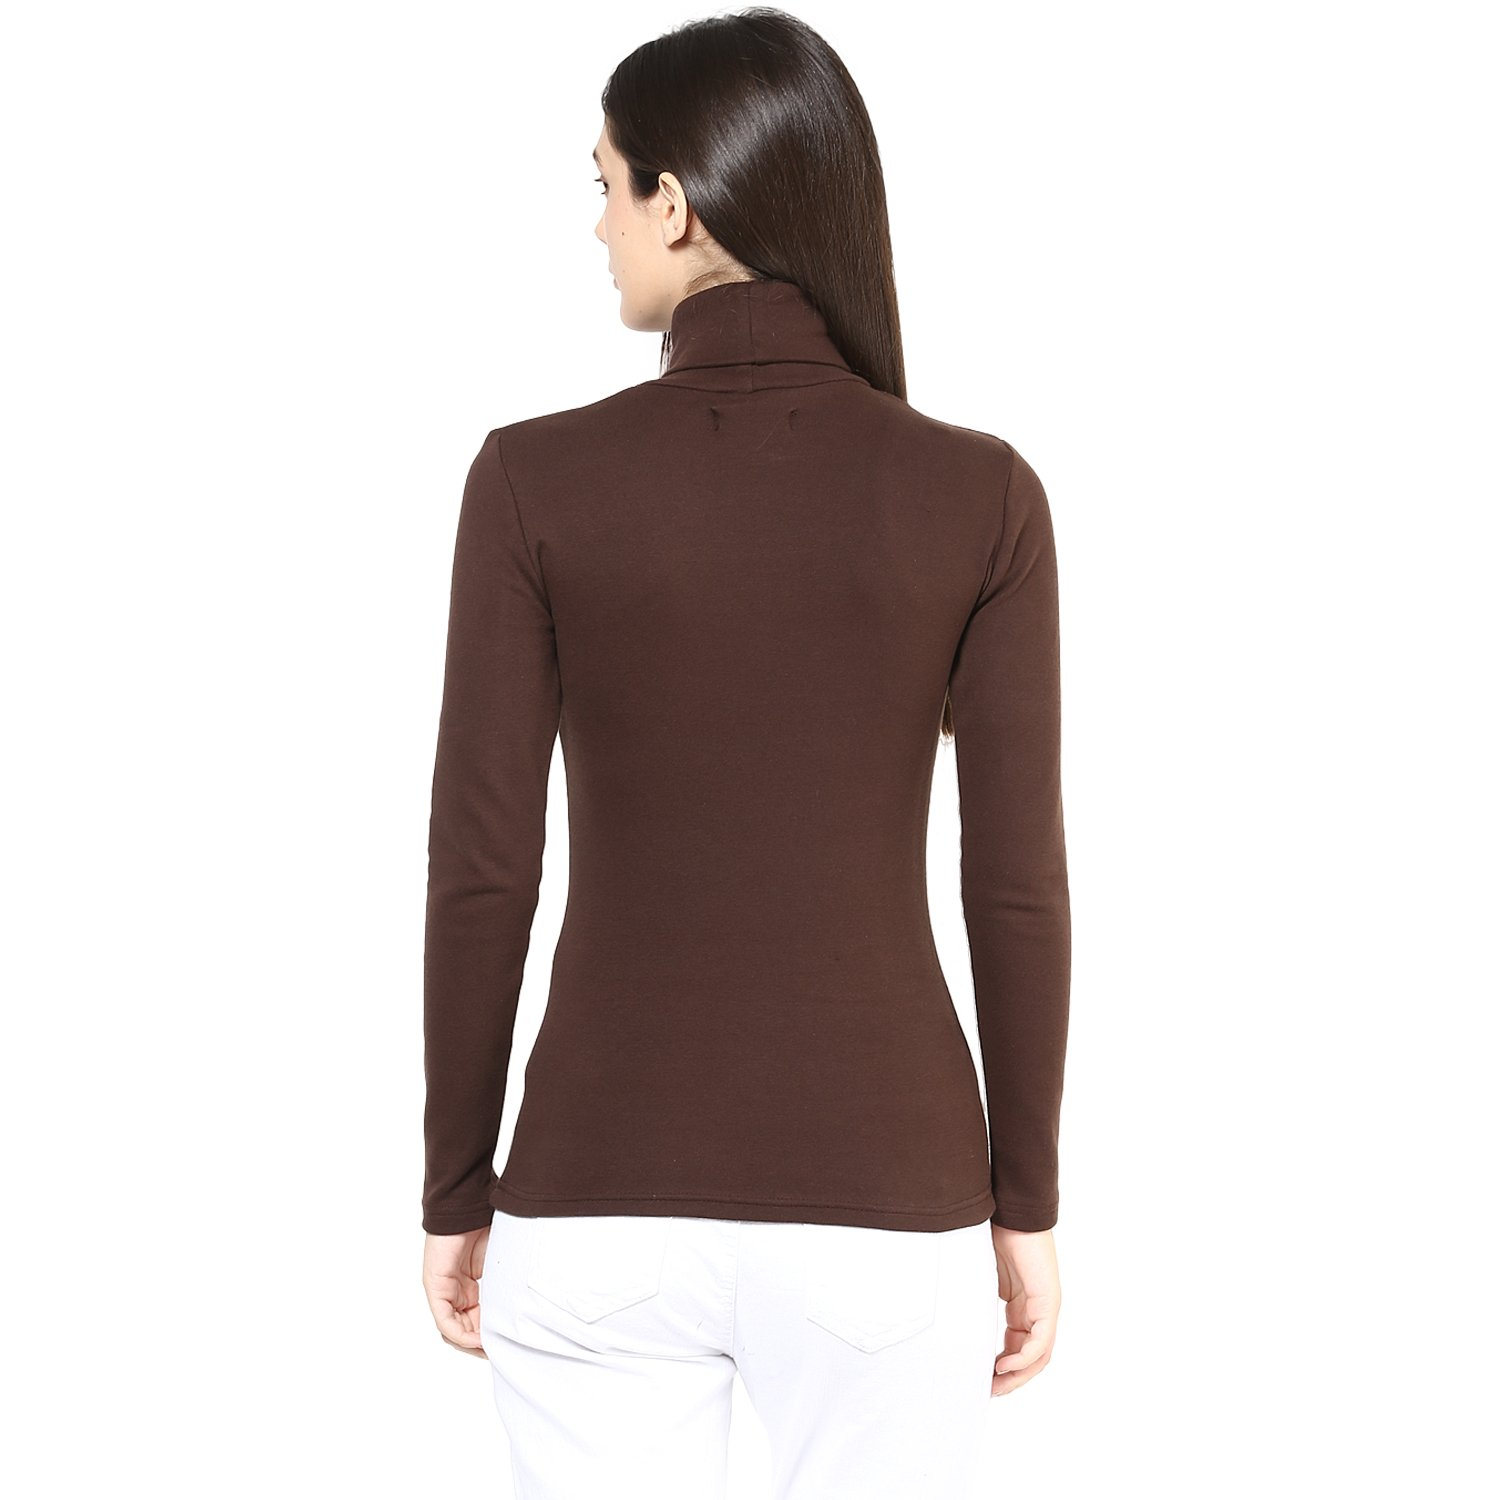 Hypernation Brown Color High Neck T-Shirt for Women  Amazon.in  Clothing    Accessories 9c19324fe